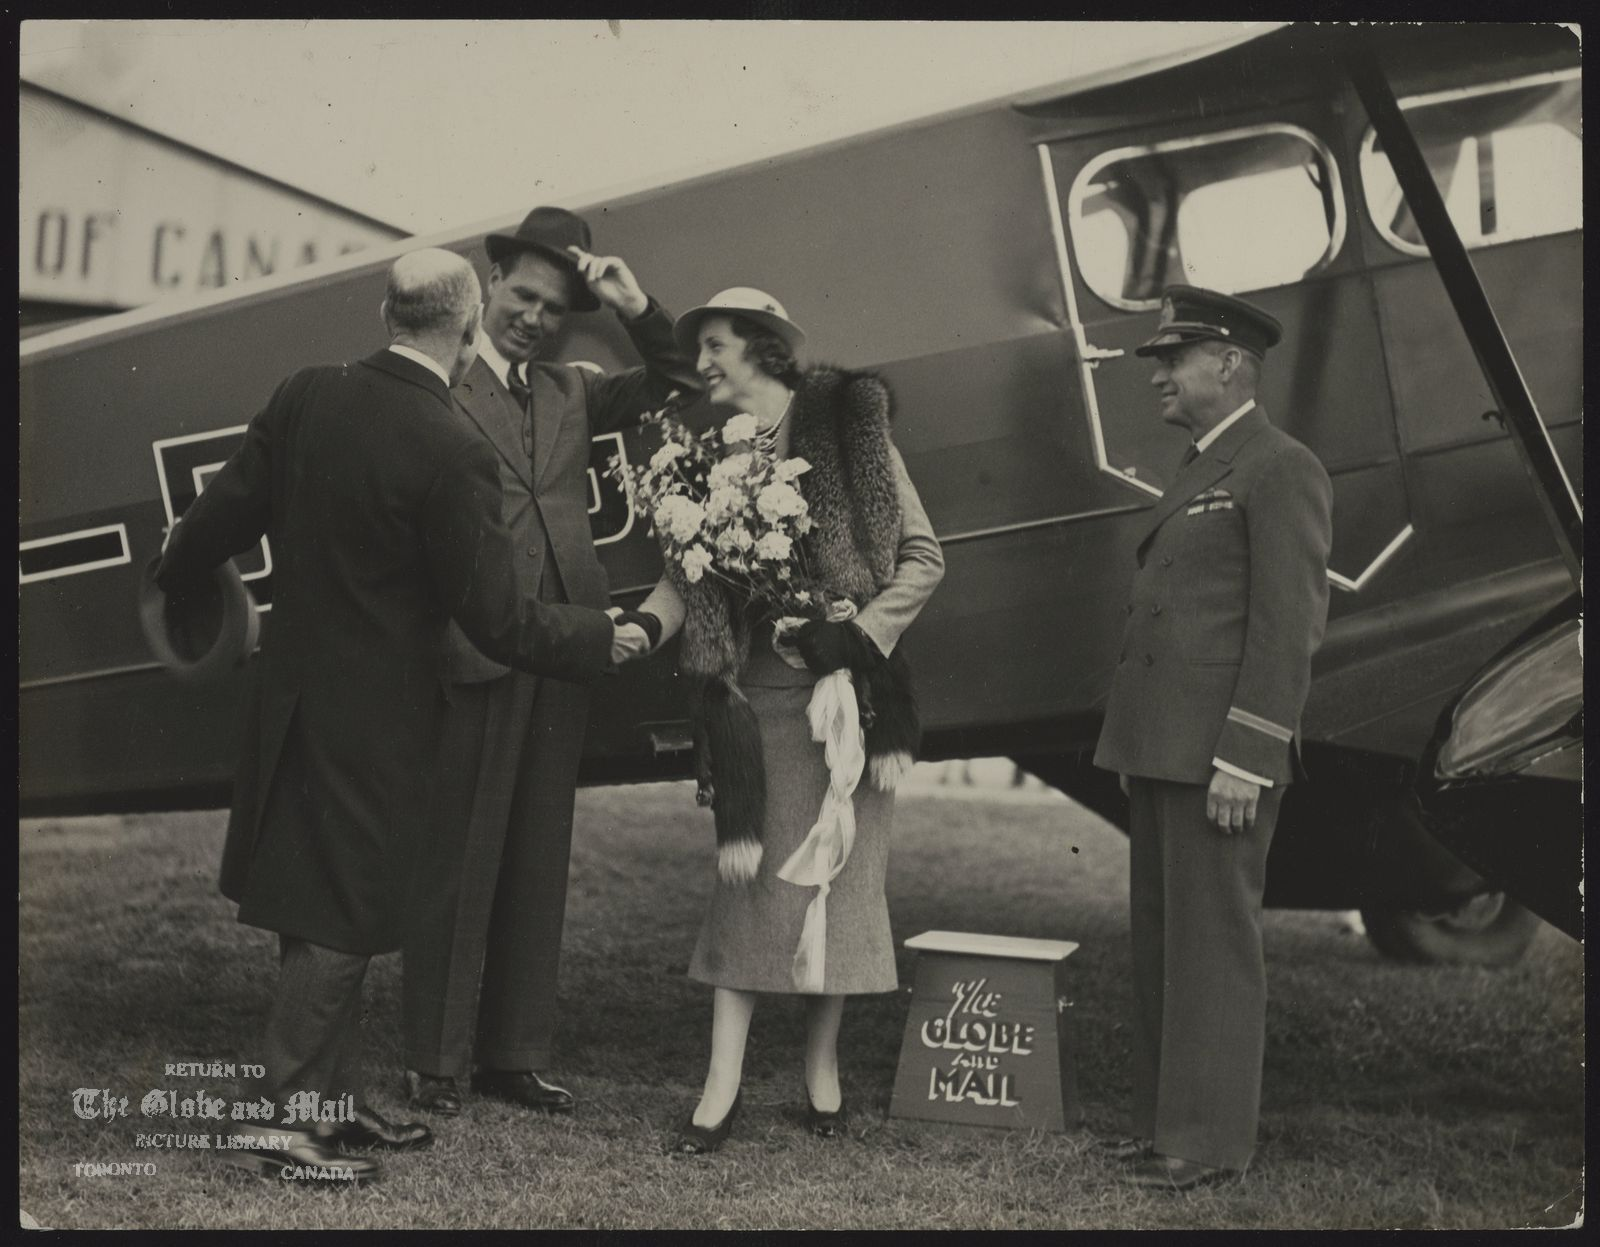 GLOBE & MAIL AIRPLANE Bill Wright shaking hands with Mrs. C. George McCullaugh, McCullagh lifting his hat, during christening of 'the flying newsroom'.